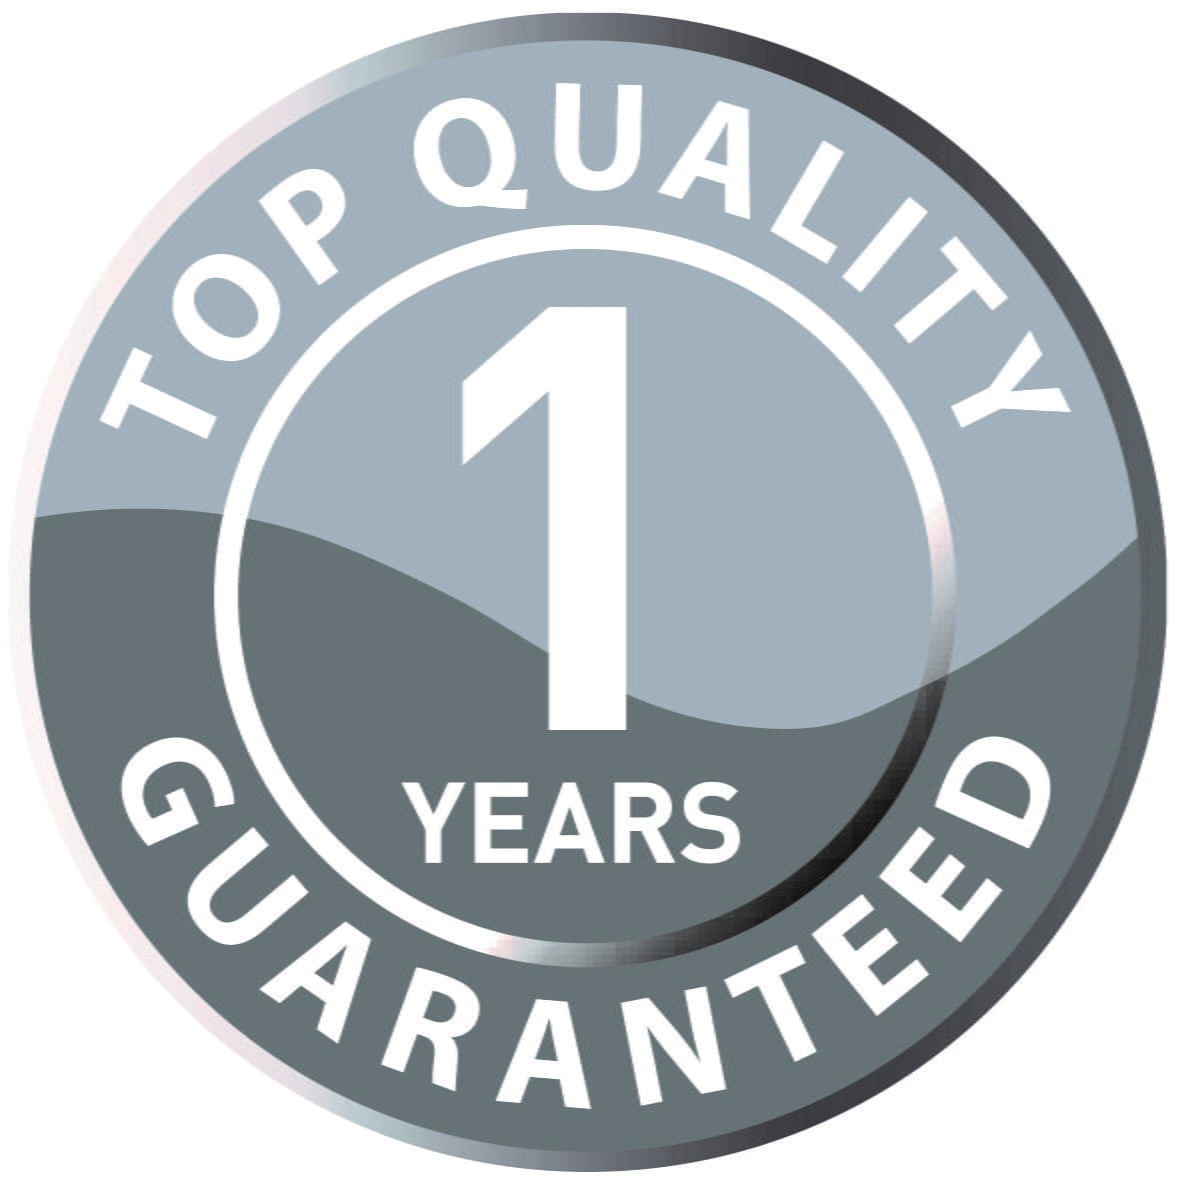 Bristan 1 Years Product Guarantee